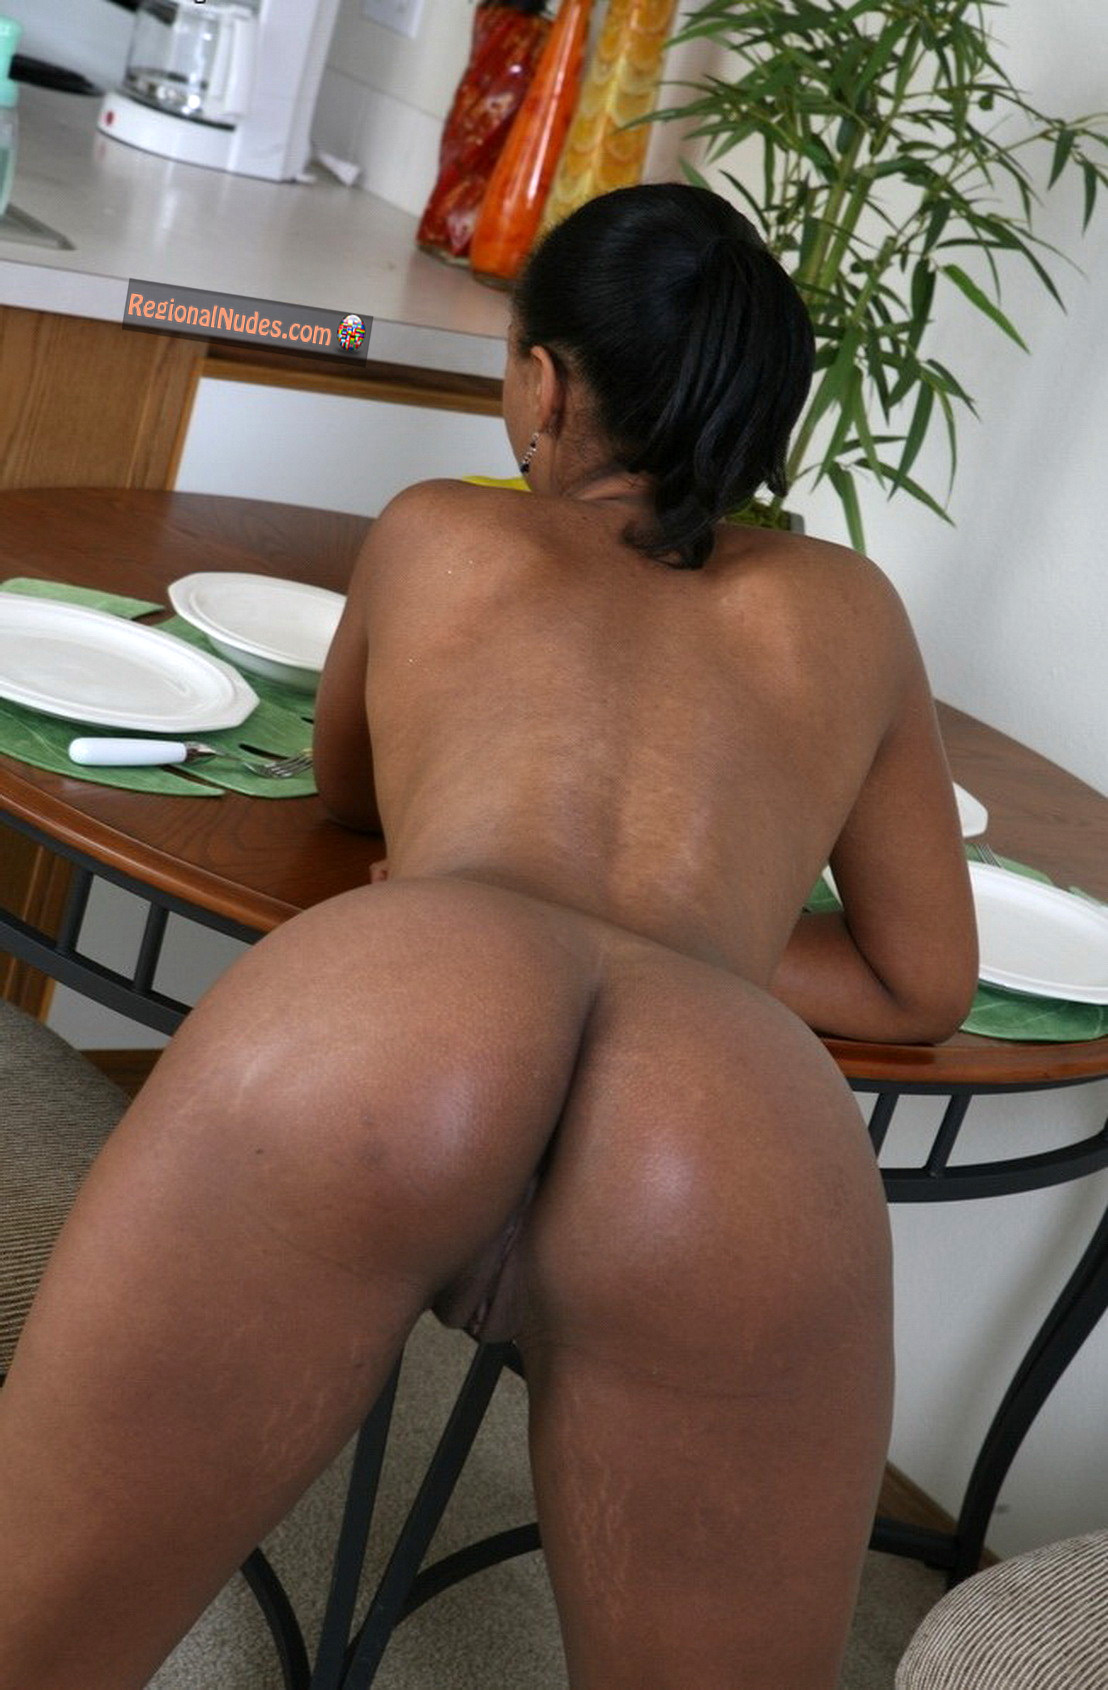 Sorry, black skinny girls bending over naked remarkable, rather